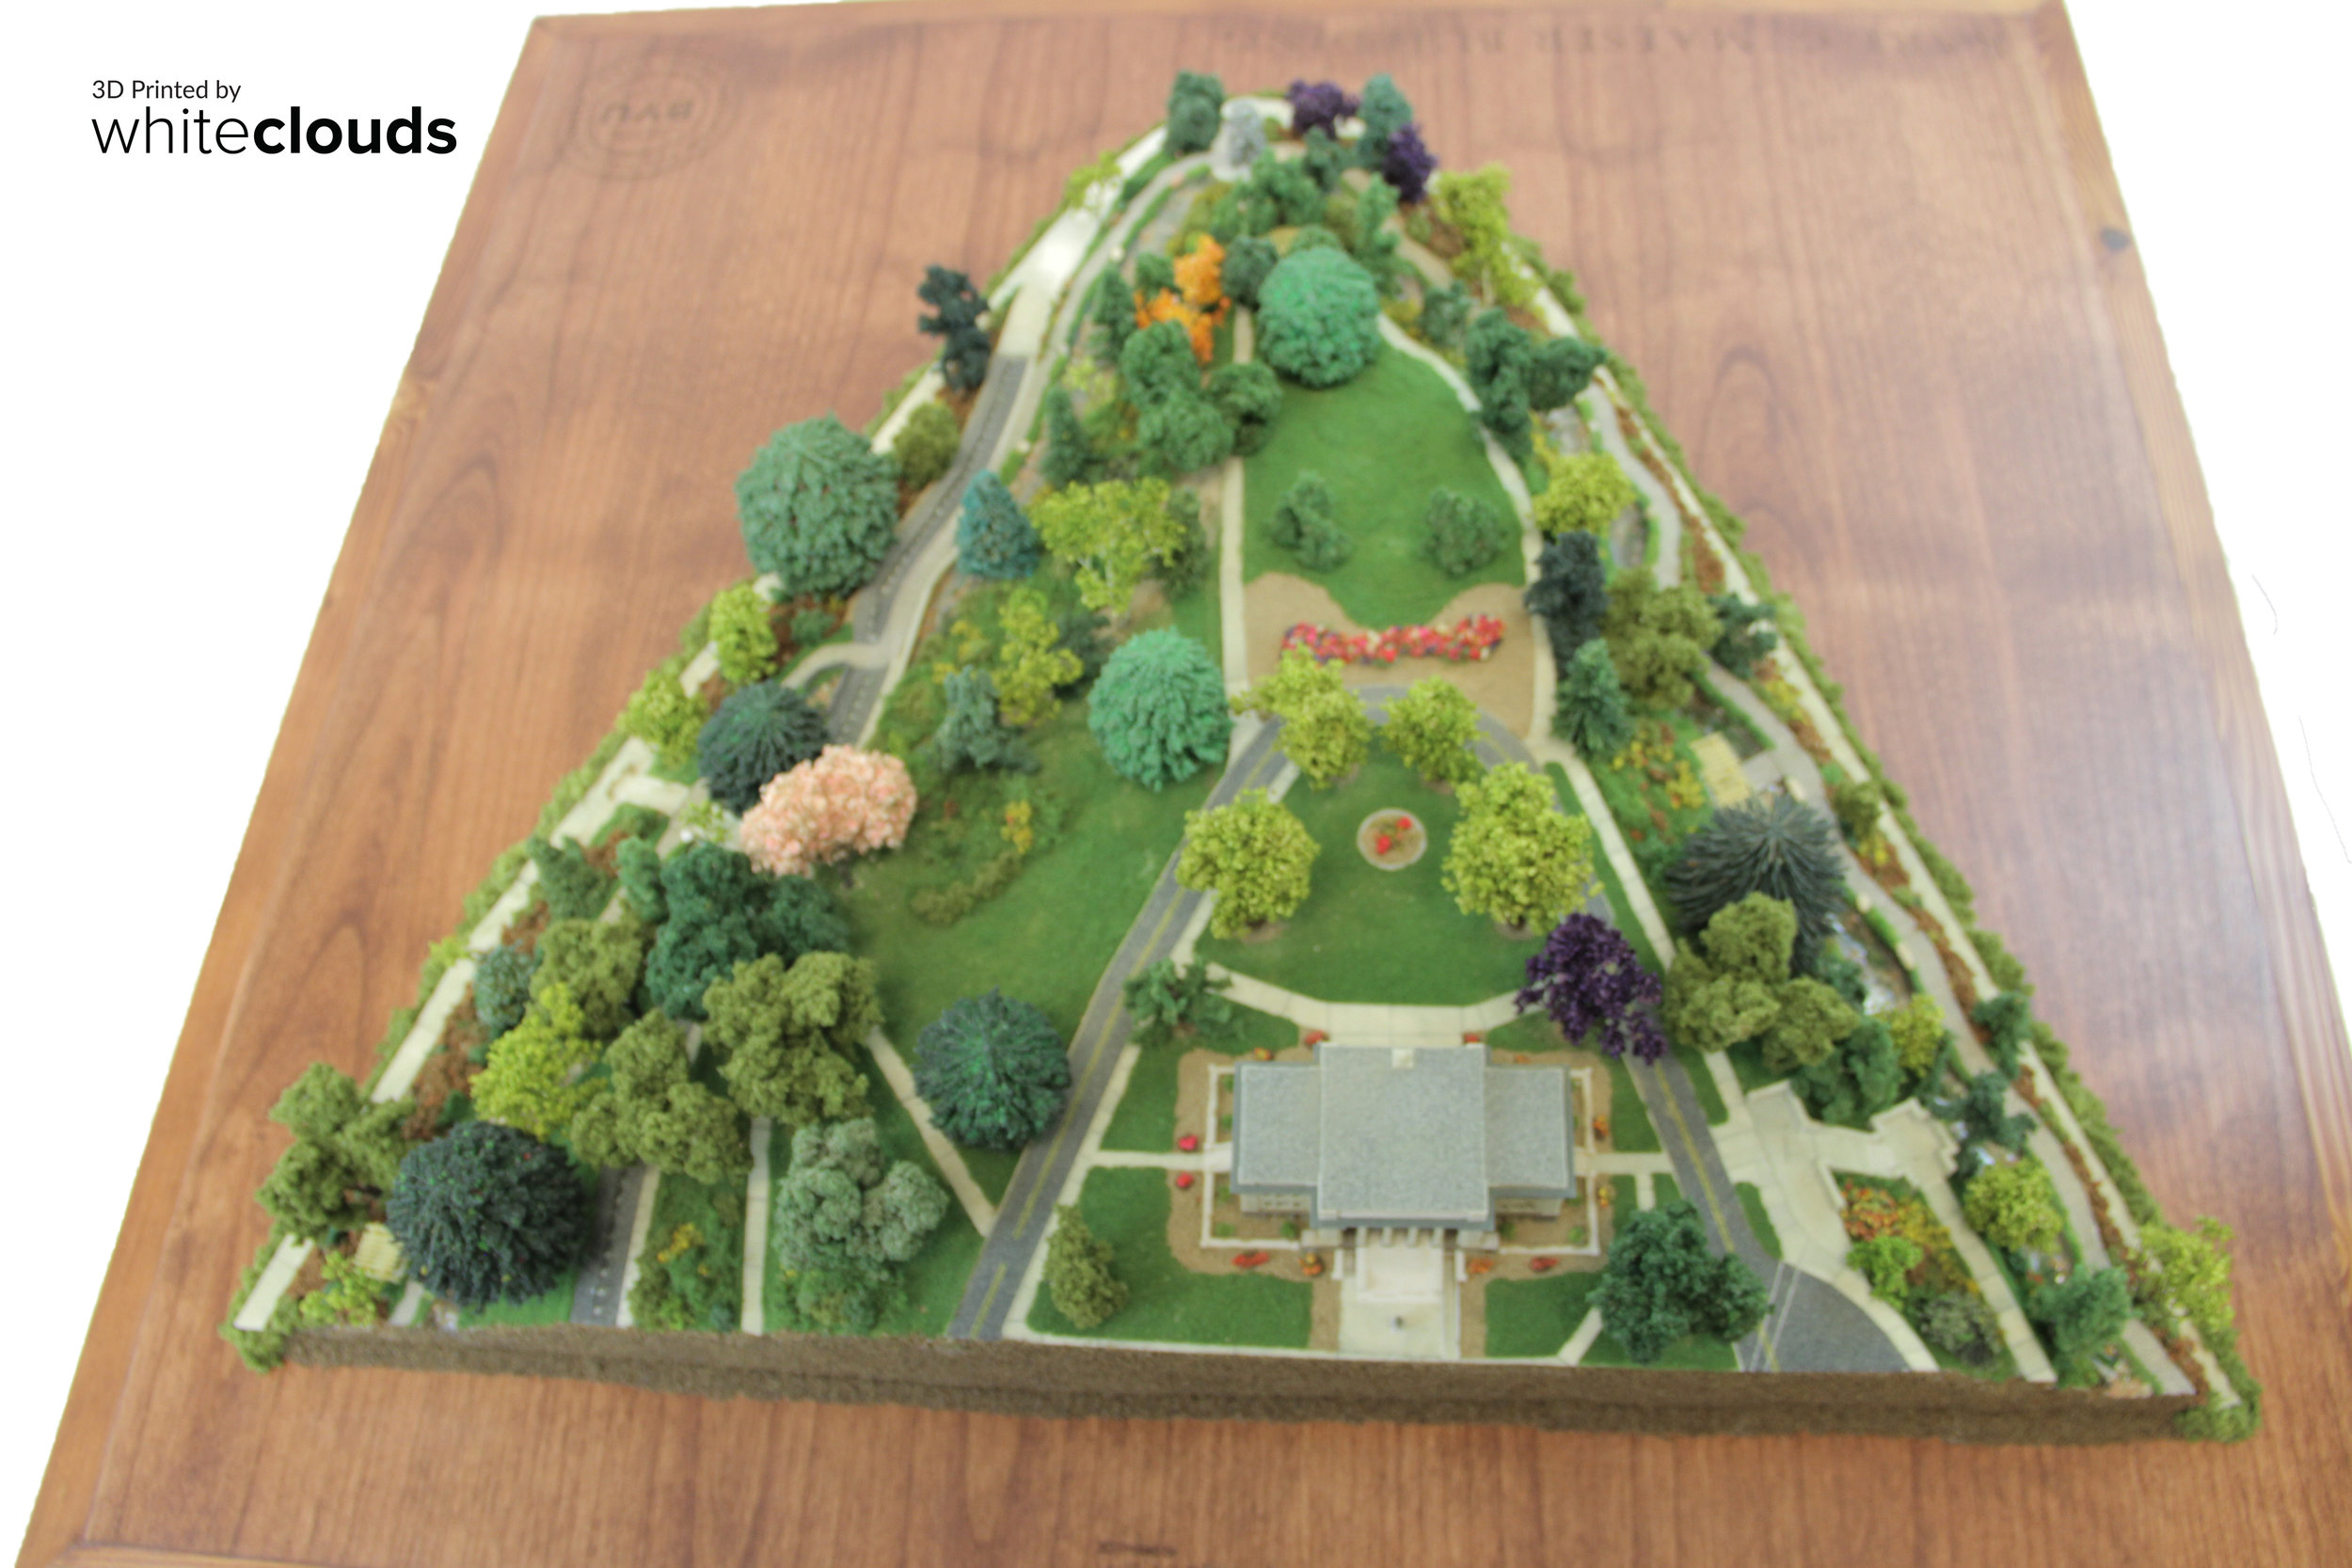 3D-Printed-WhiteCloud-Campus-Architectural-BYU-Sales-Model-3.JPG